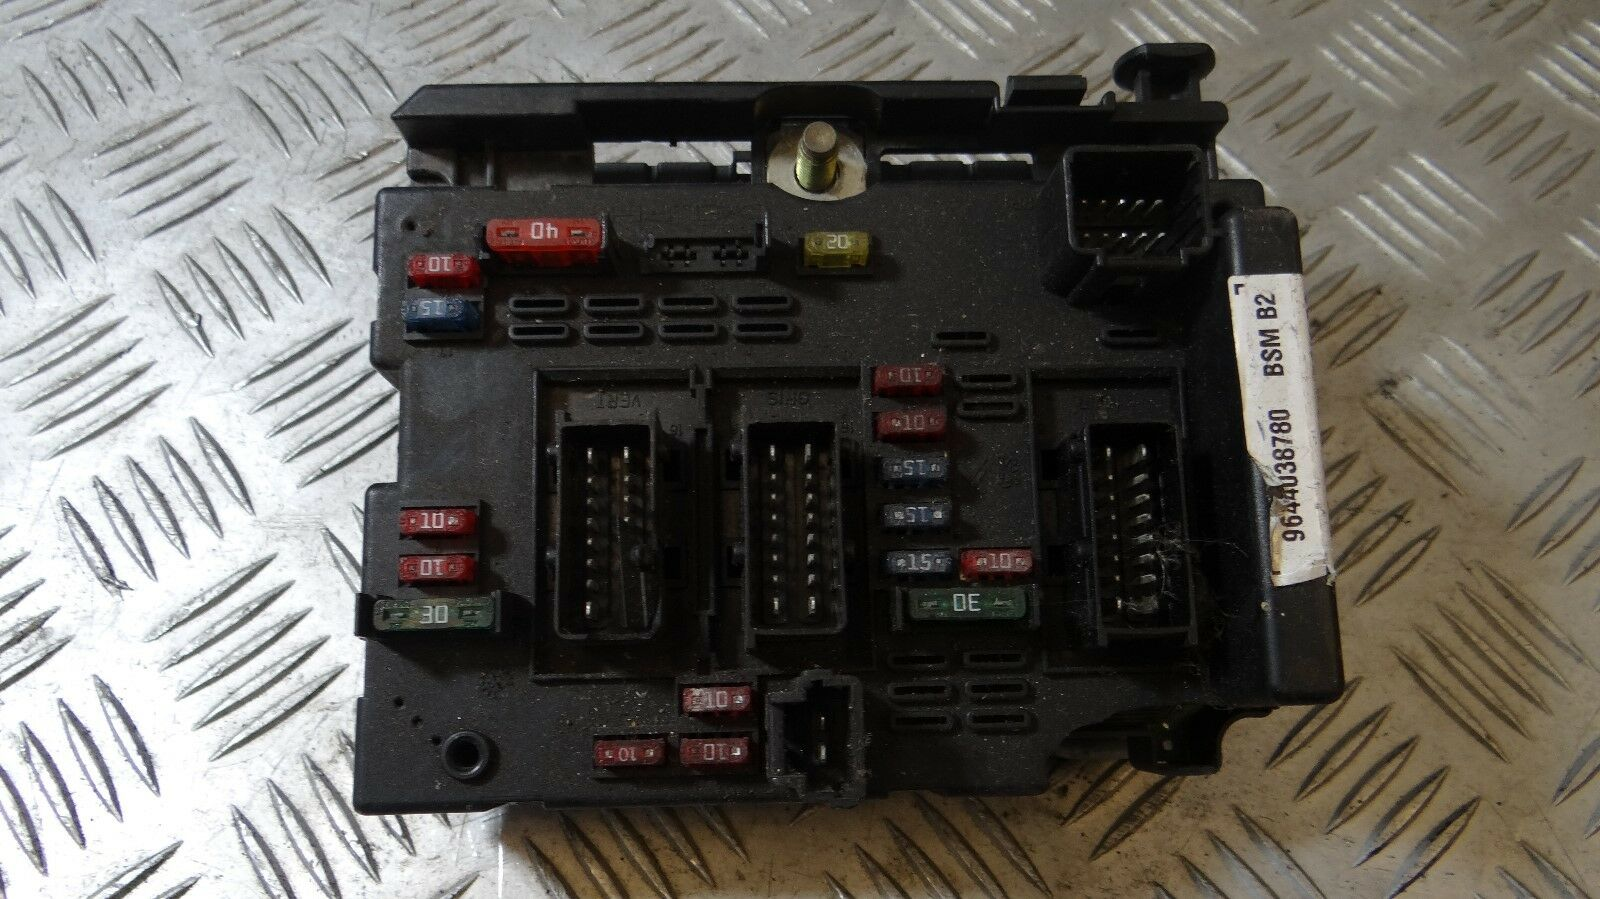 Peugeot Citroen Fusebox Delphi Bsm B2 9644038780 3599 Fuse Box 1 Of 3only Available